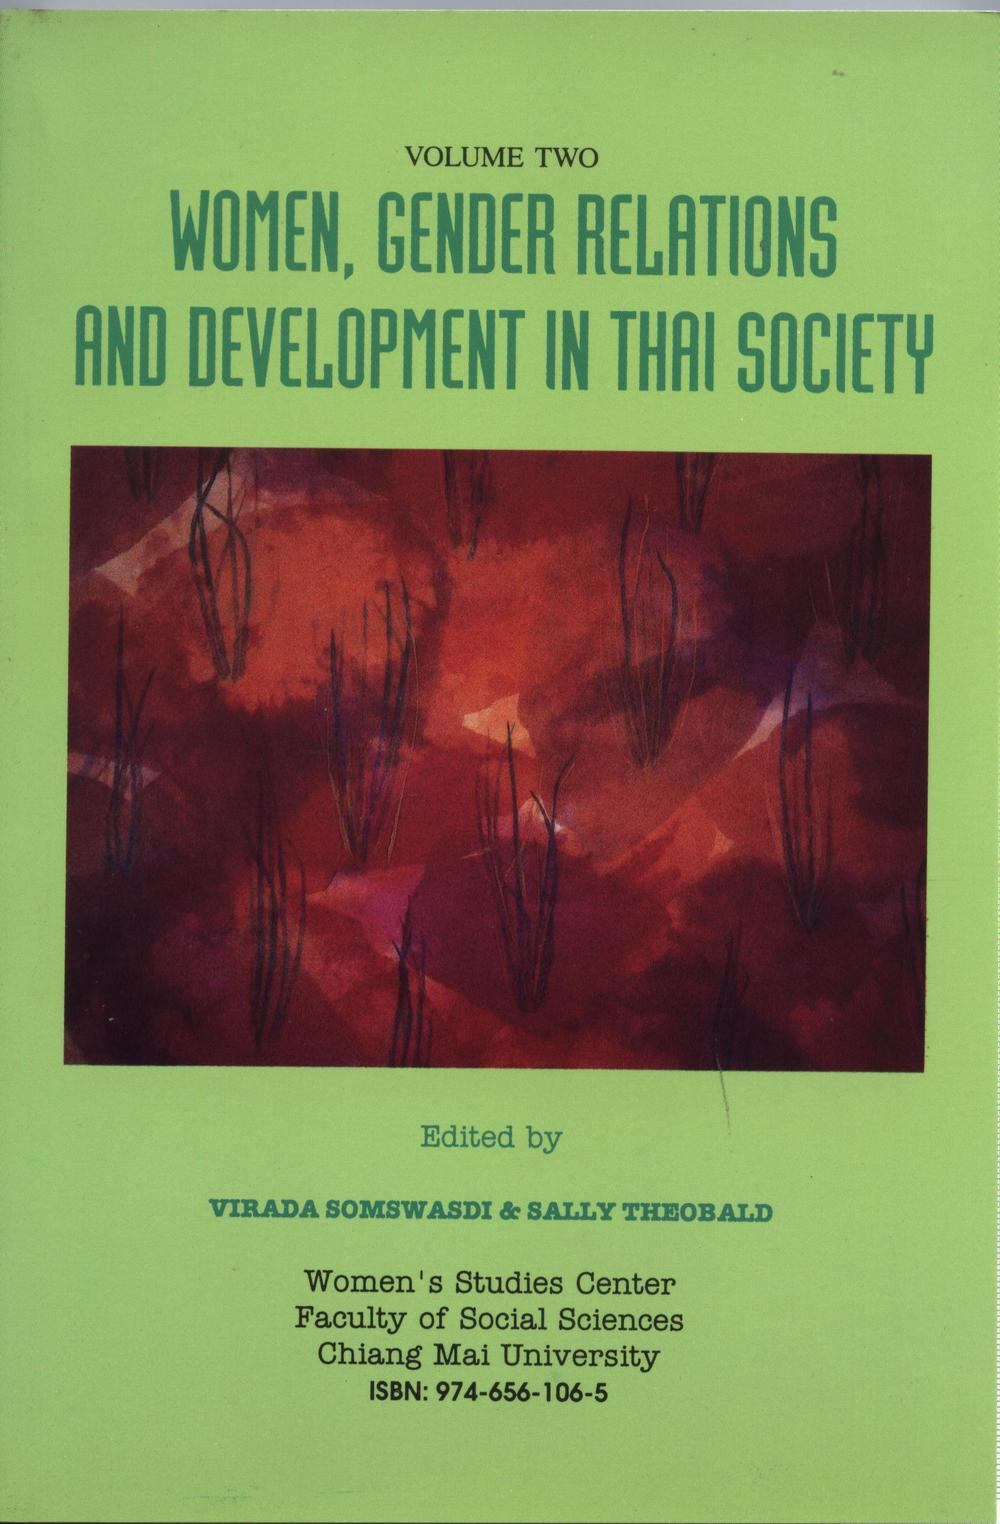 Women, gender relations and development in Thai society (Volume Two)